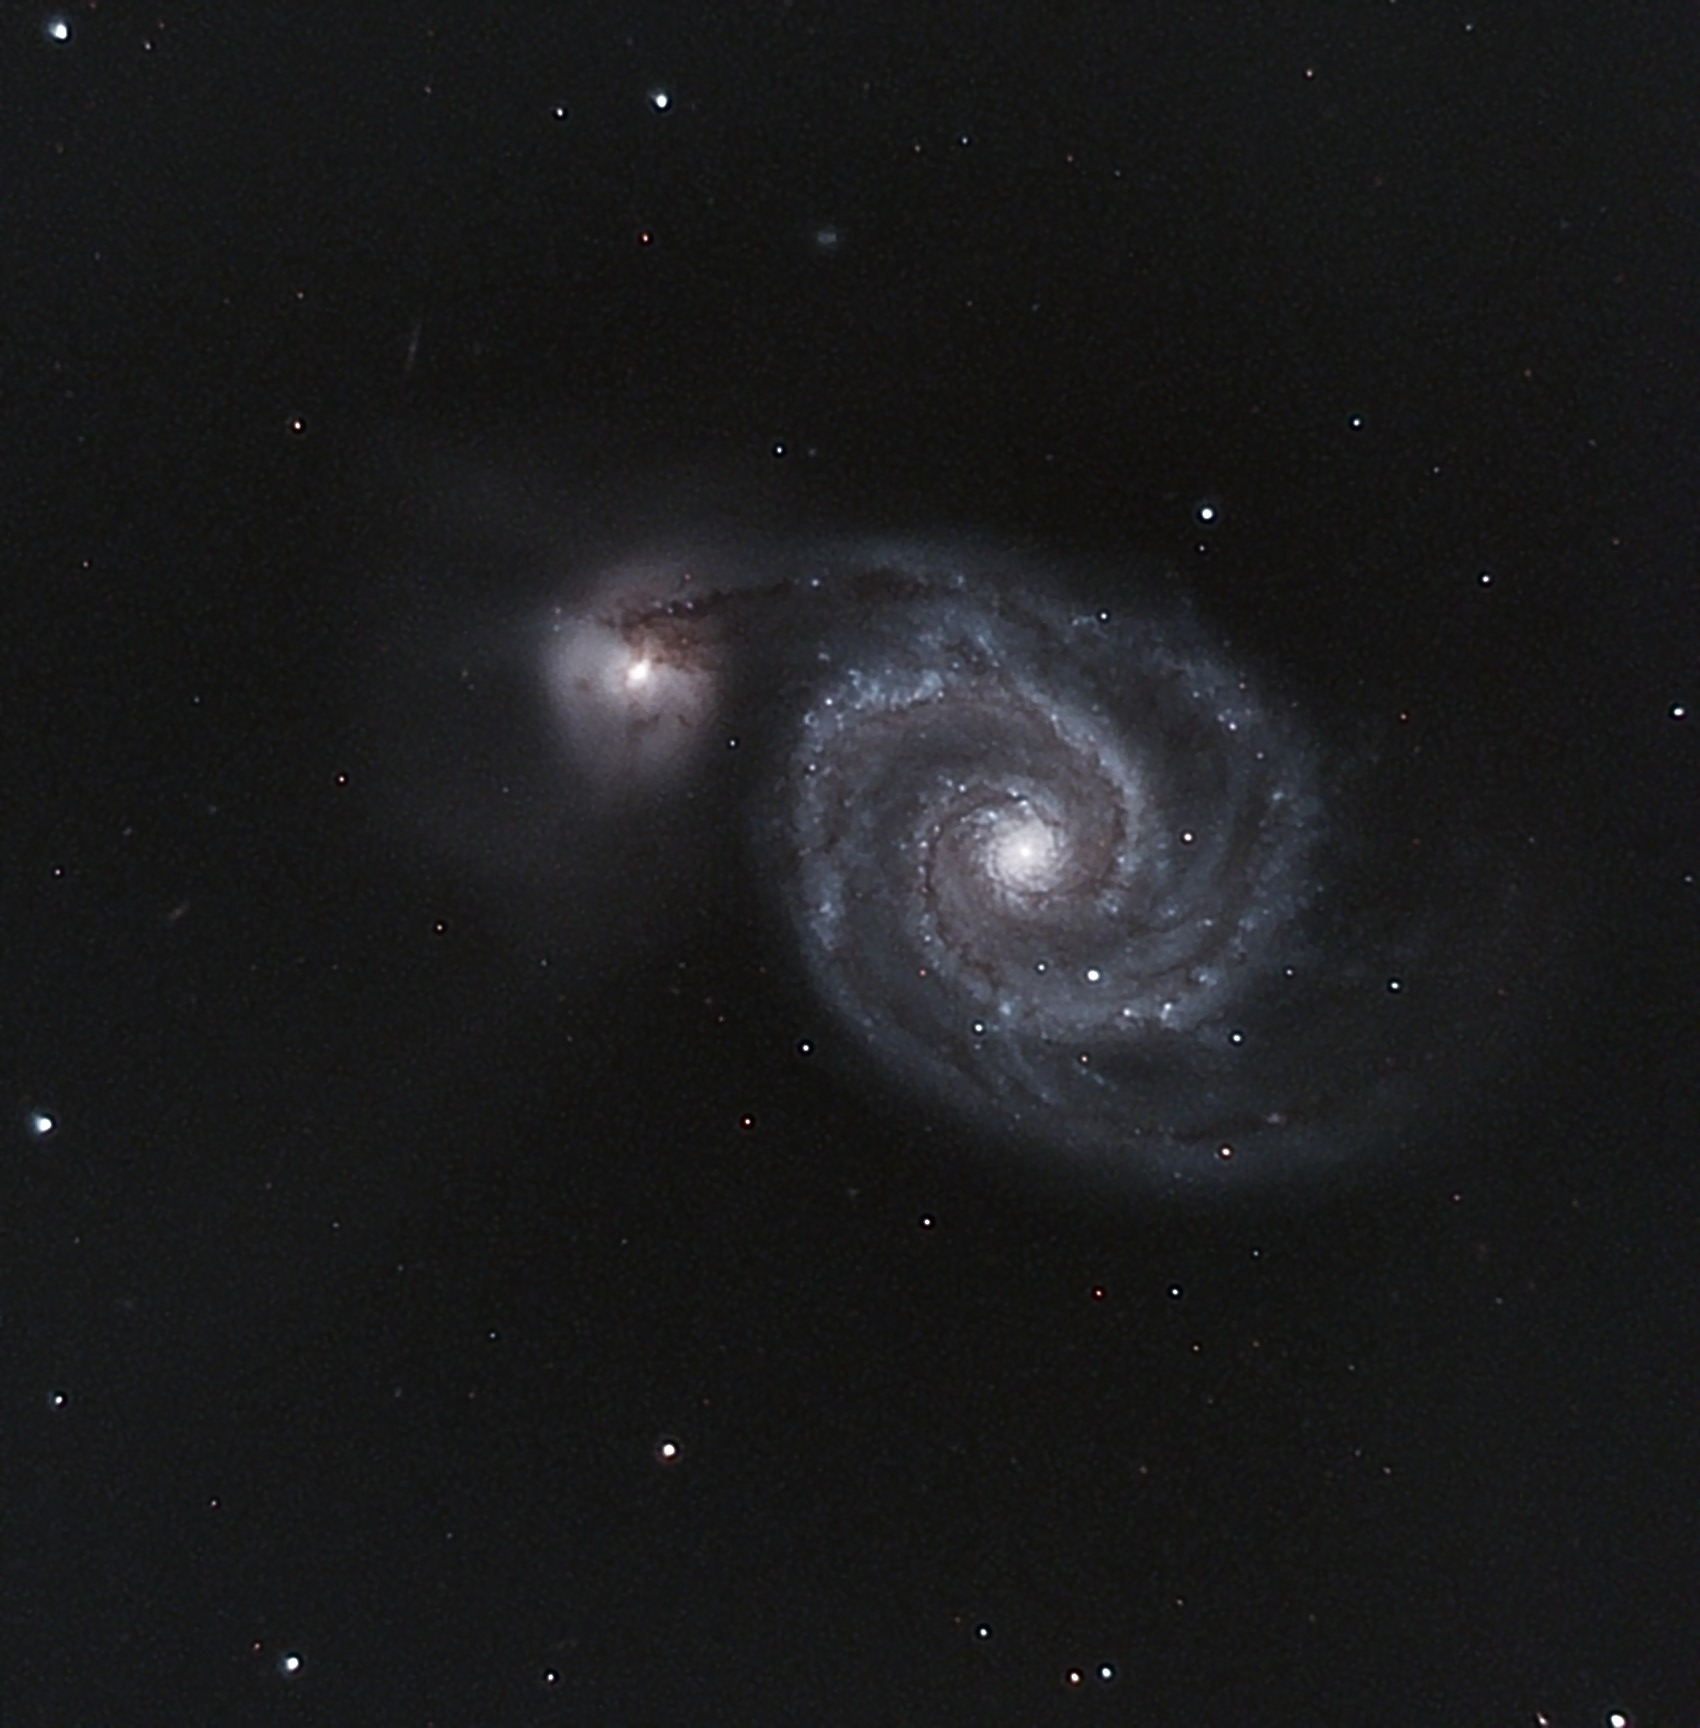 M51 - Whirlpool Galaxy and companion (NGC 5194 and 5195)